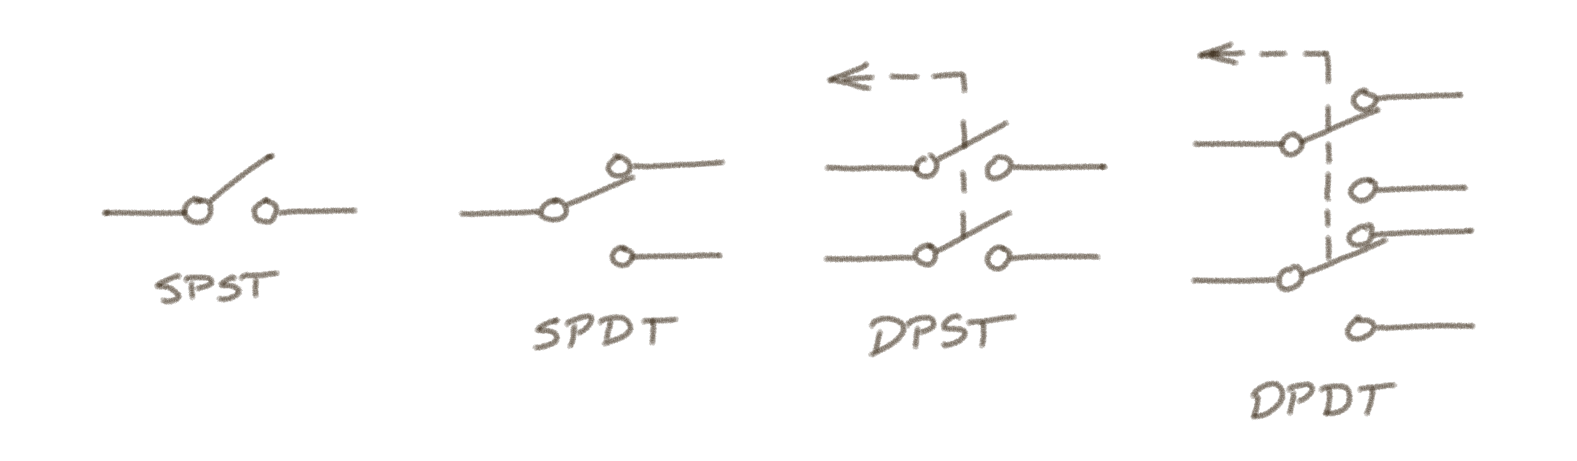 components_bjt-switch-switch-symbols.png